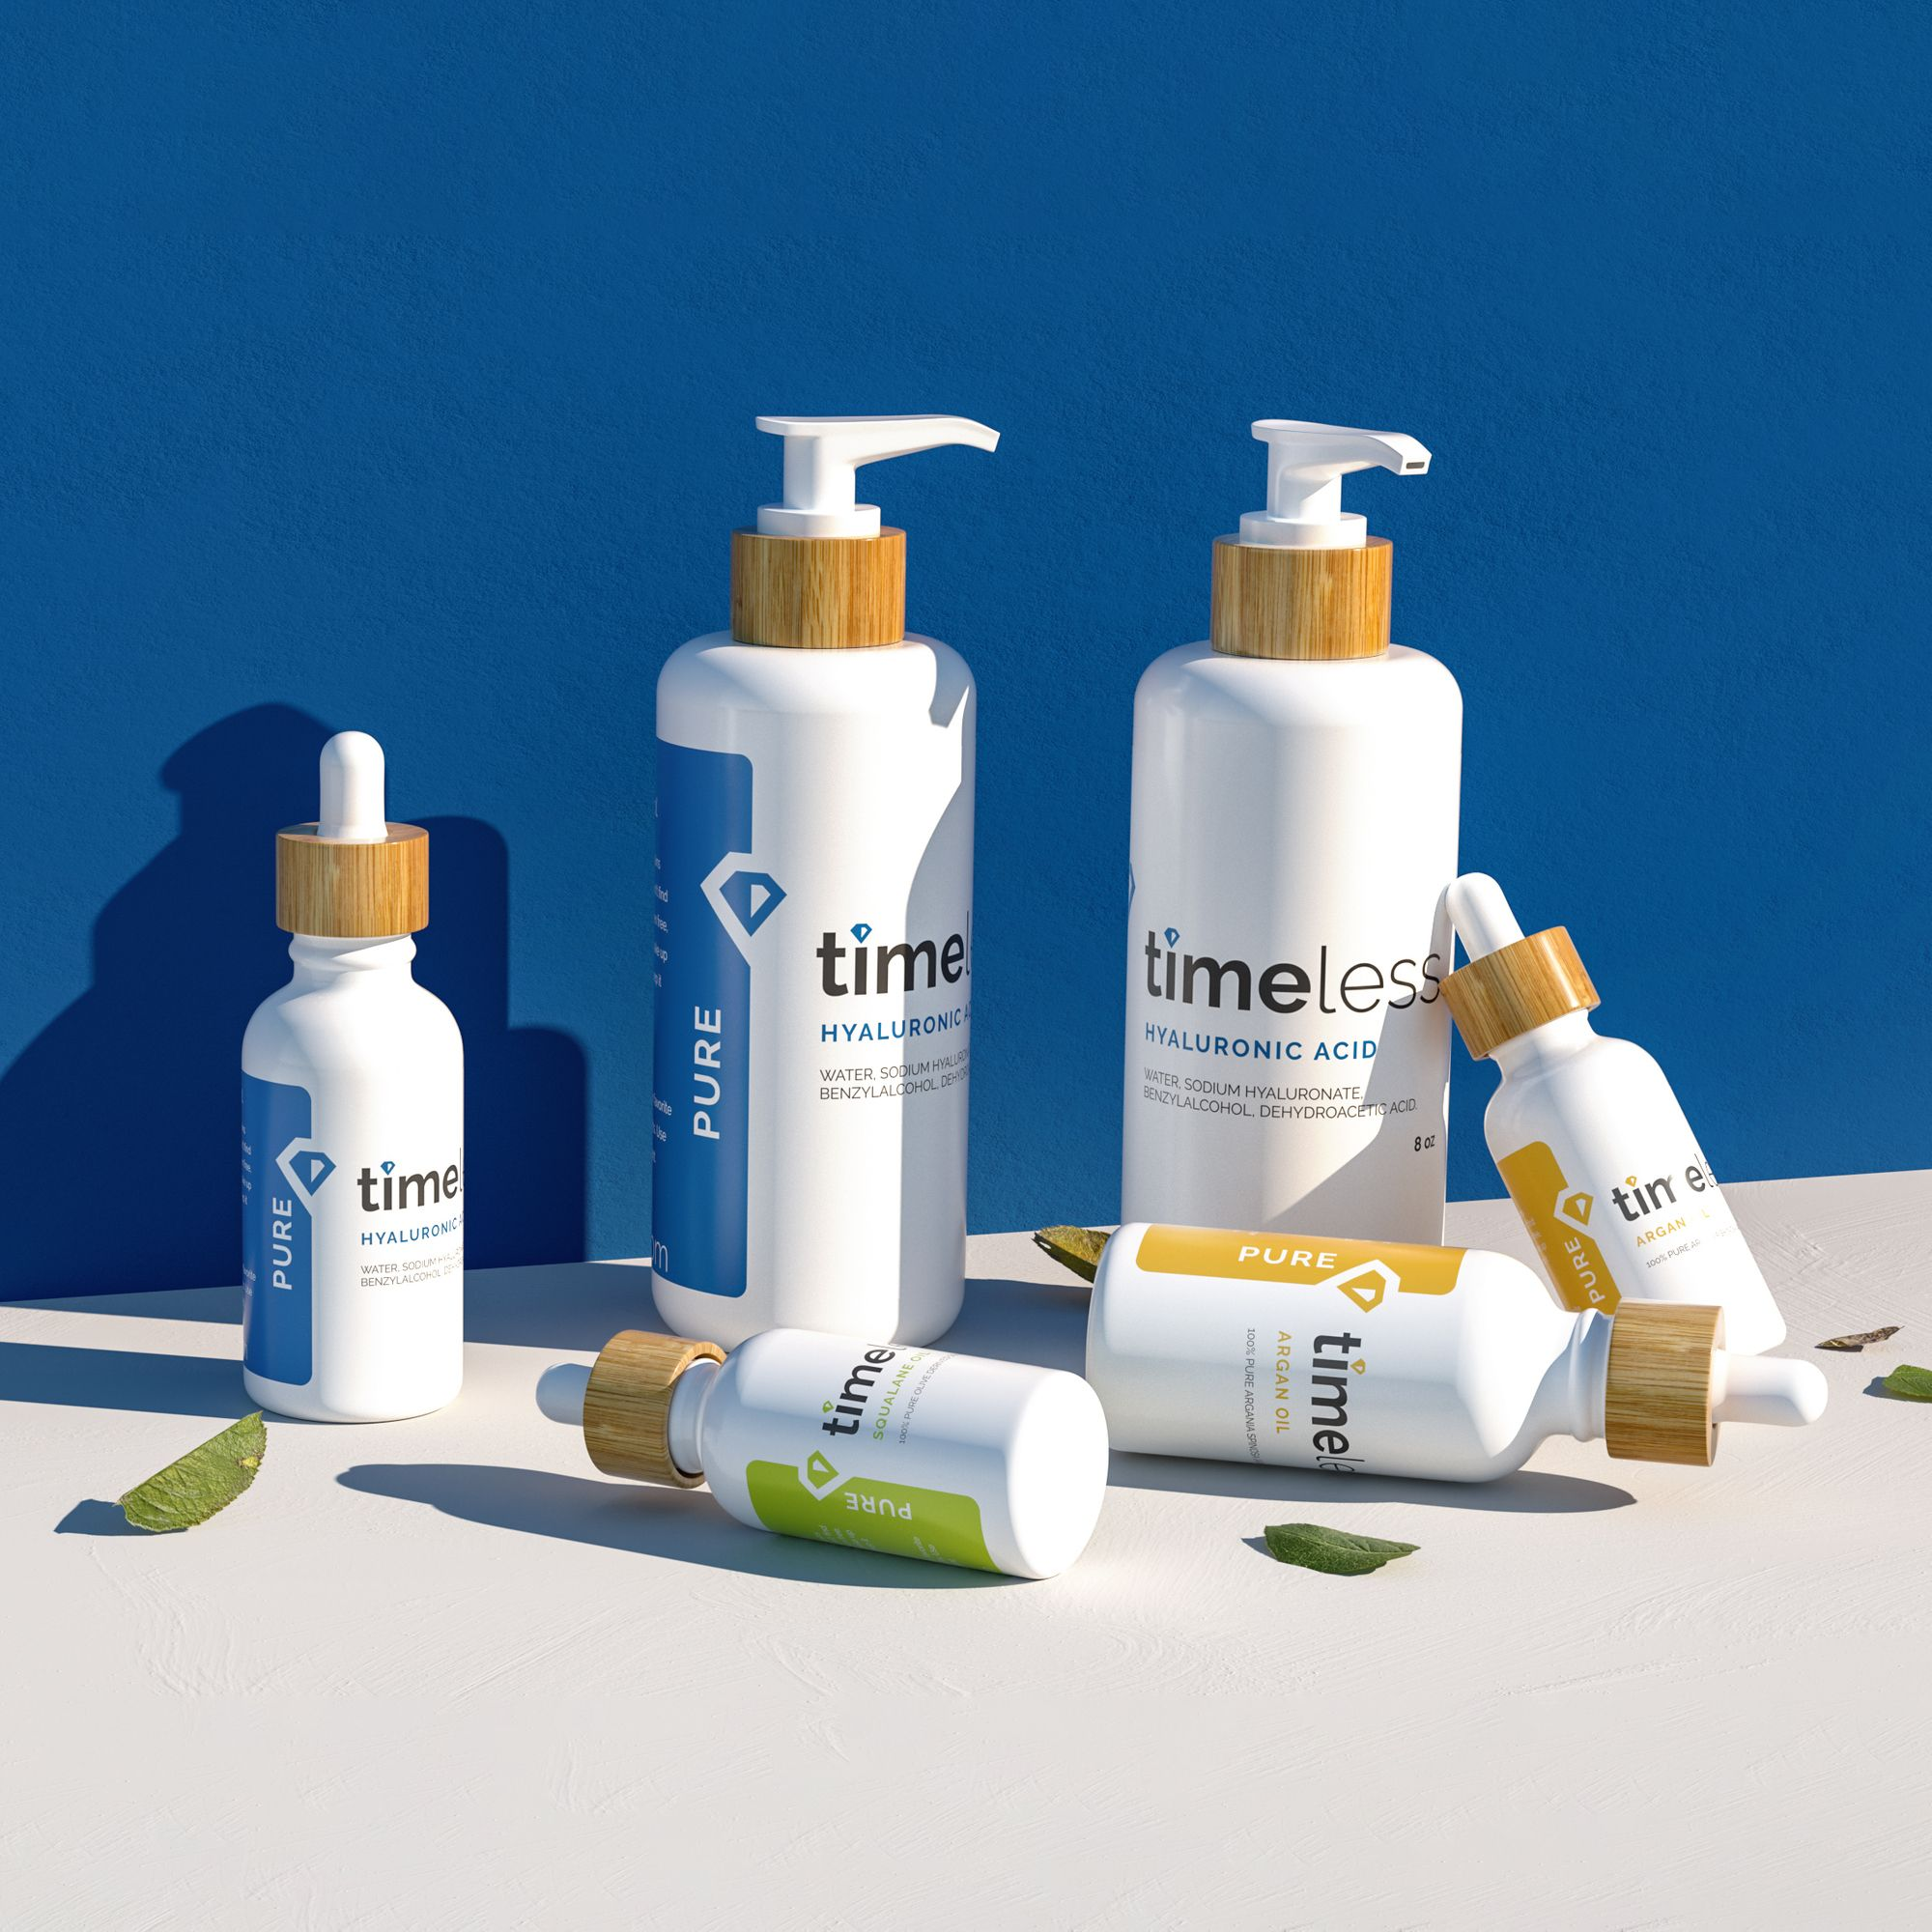 New Look Same Amazing Formulas Timeless Skin Care Pure Products Paraben Free Products